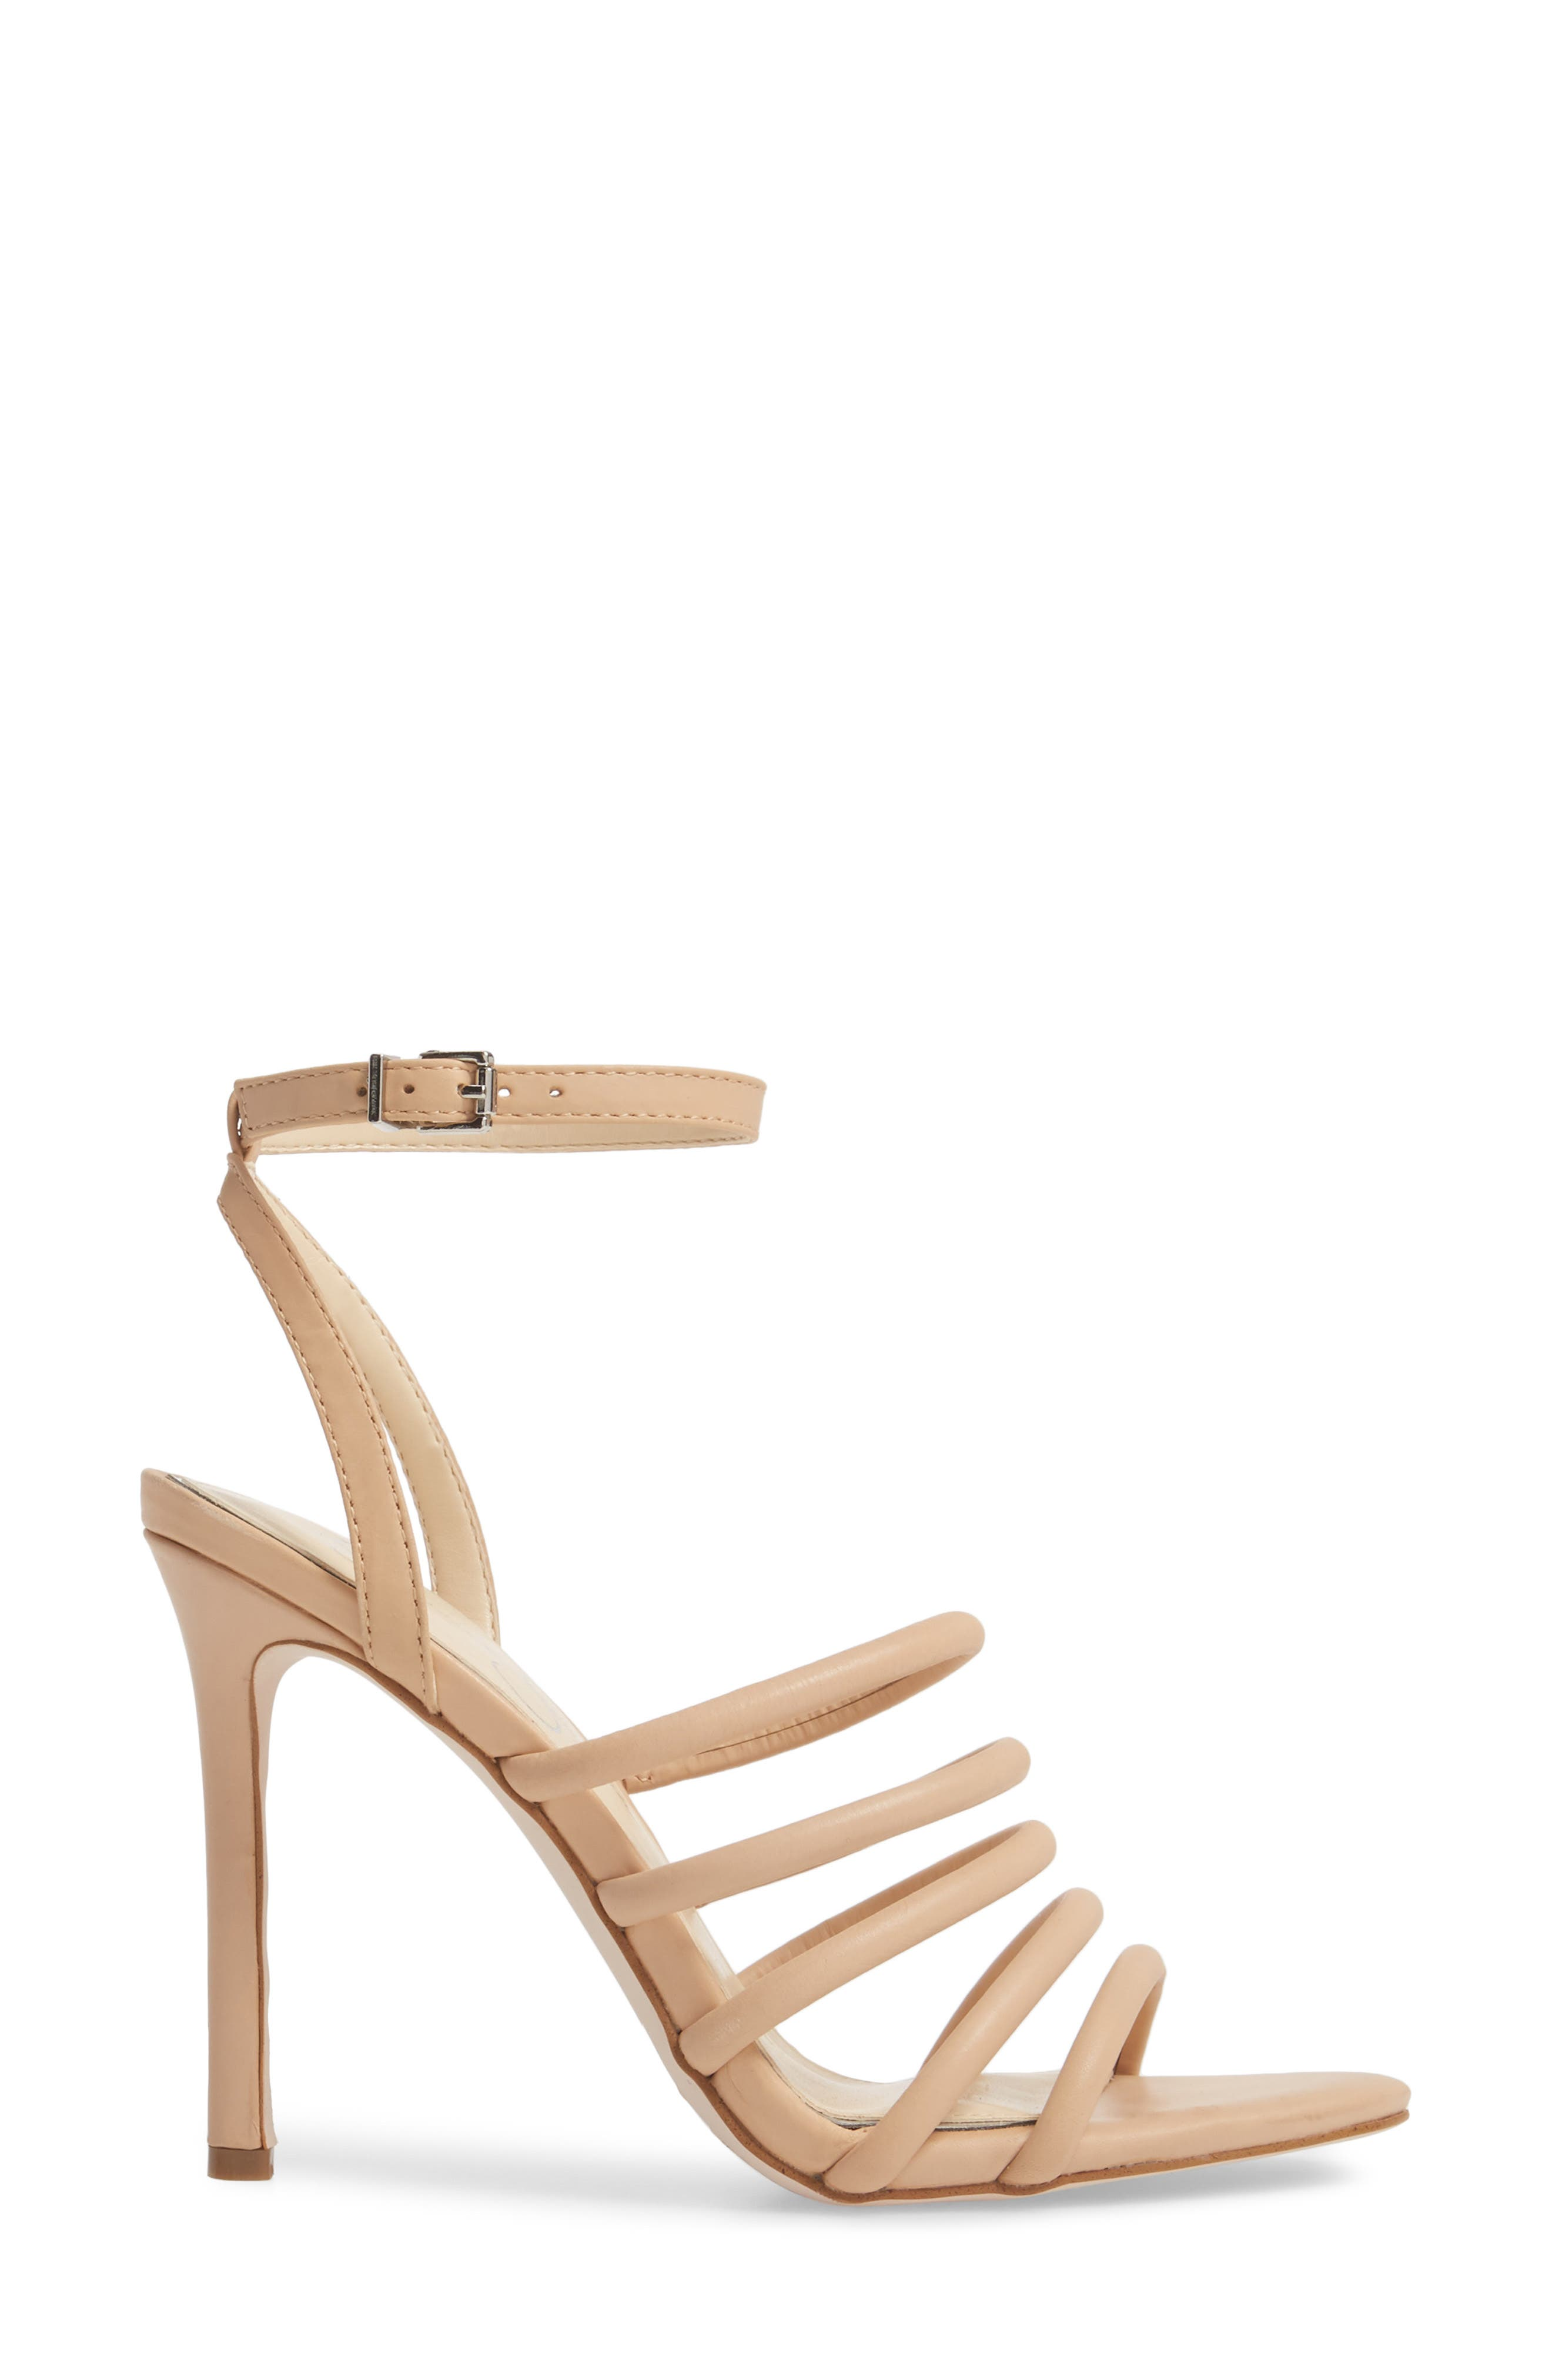 Joselle Strappy Sandal,                             Alternate thumbnail 9, color,